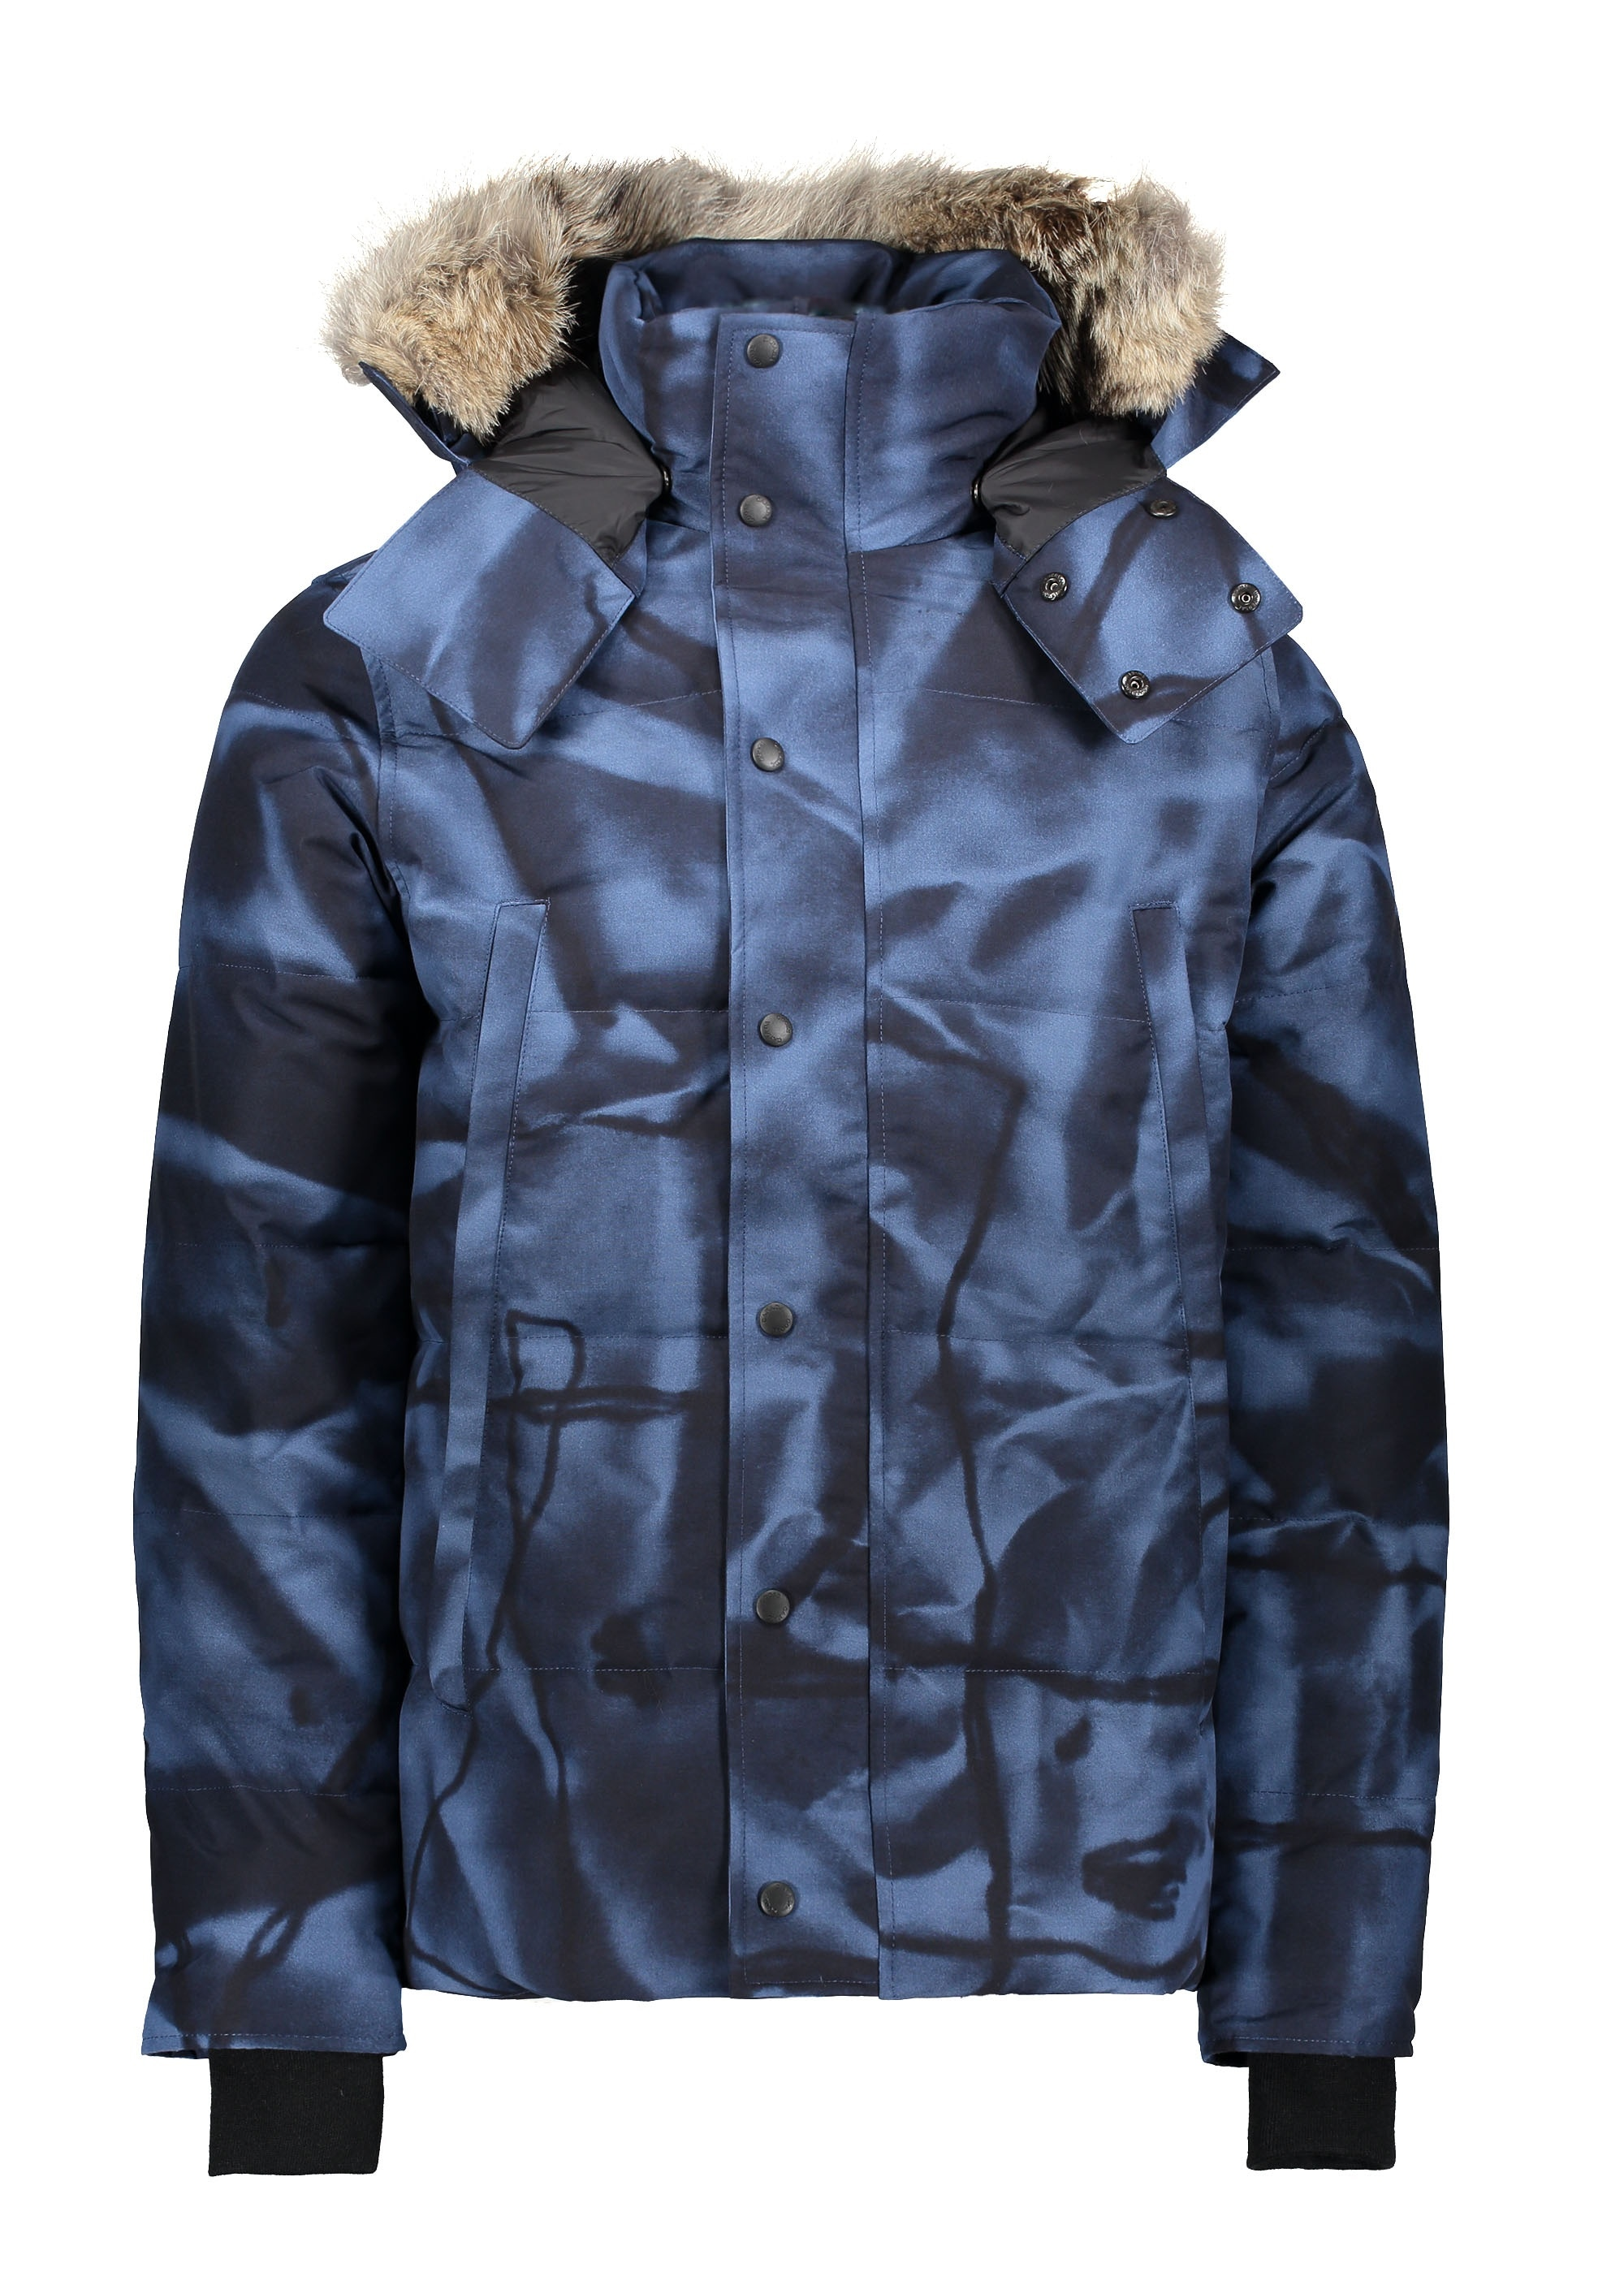 5613bf9c86eda Canada Goose Wyndham Parka - Blue Abstract Camo - Triads Mens from ...